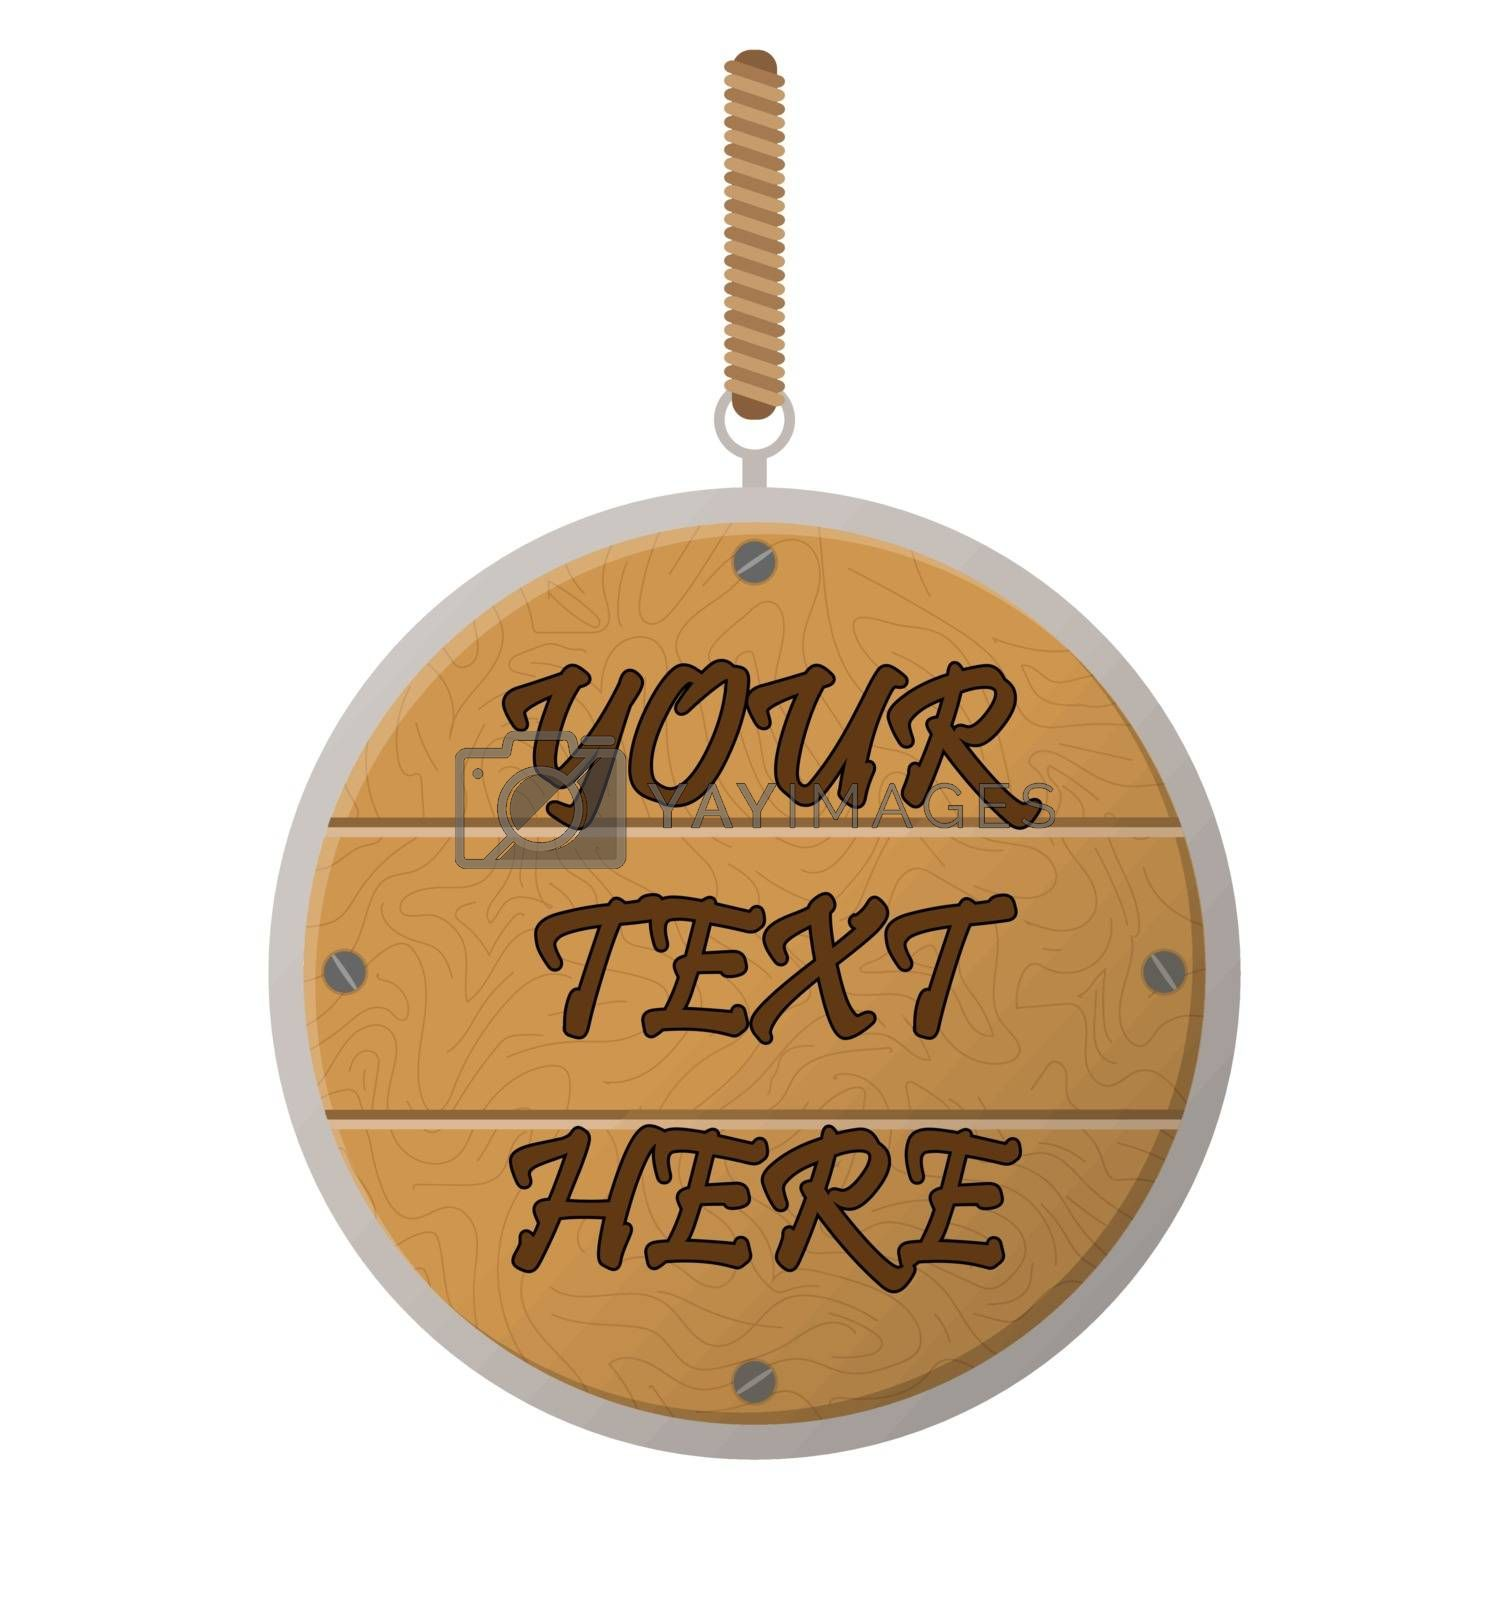 Royalty free image of Wooden plate with a ring on a rope, a place for your text by Grommik